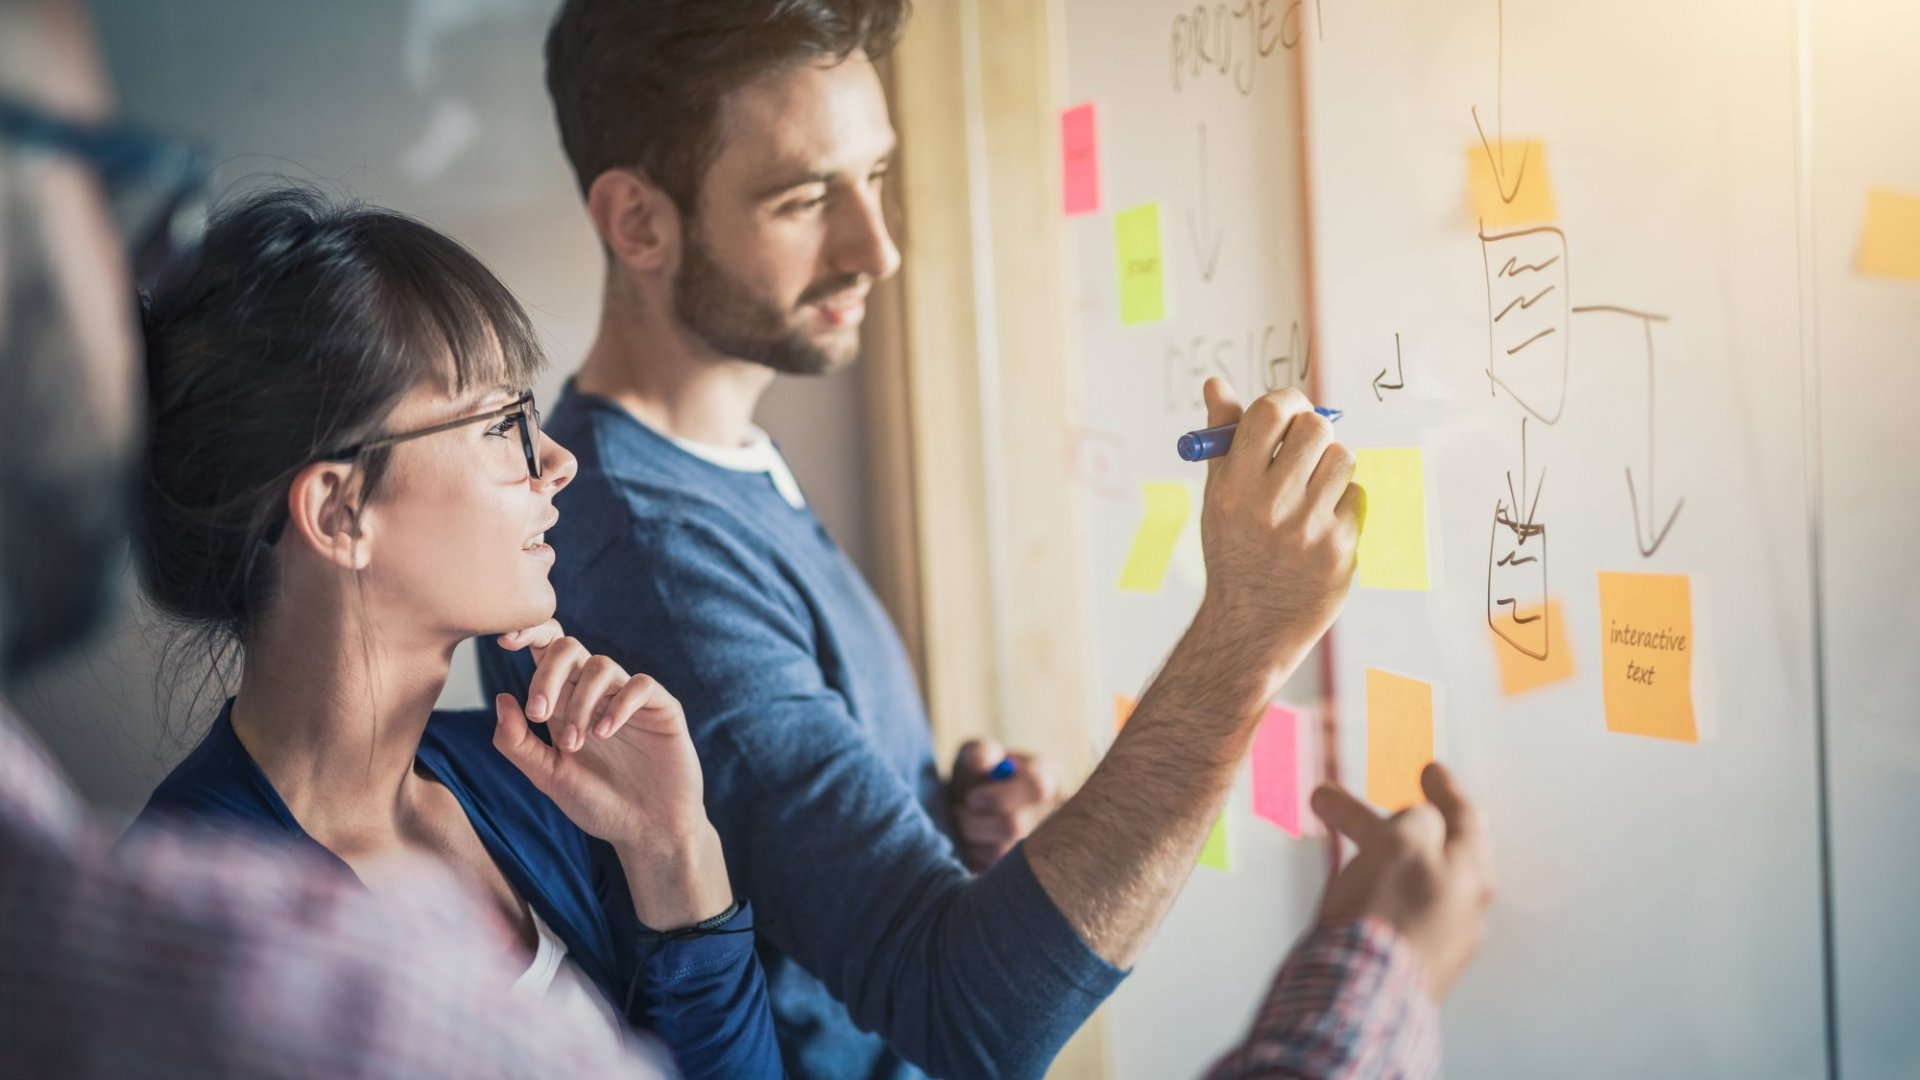 How Can Entrepreneurs Assess Their Product-Market Fit?